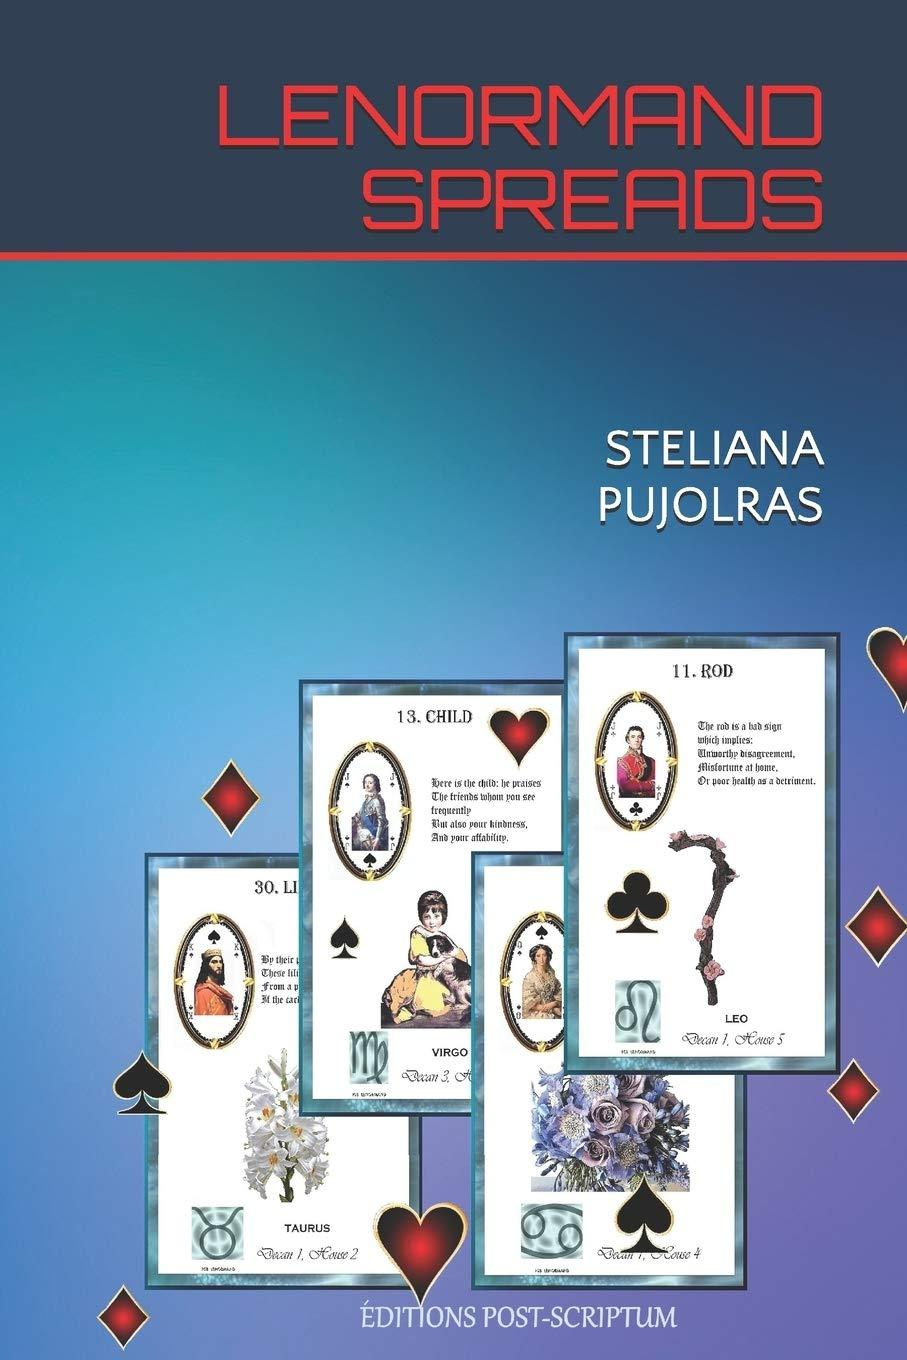 LENORMAND SPREADS